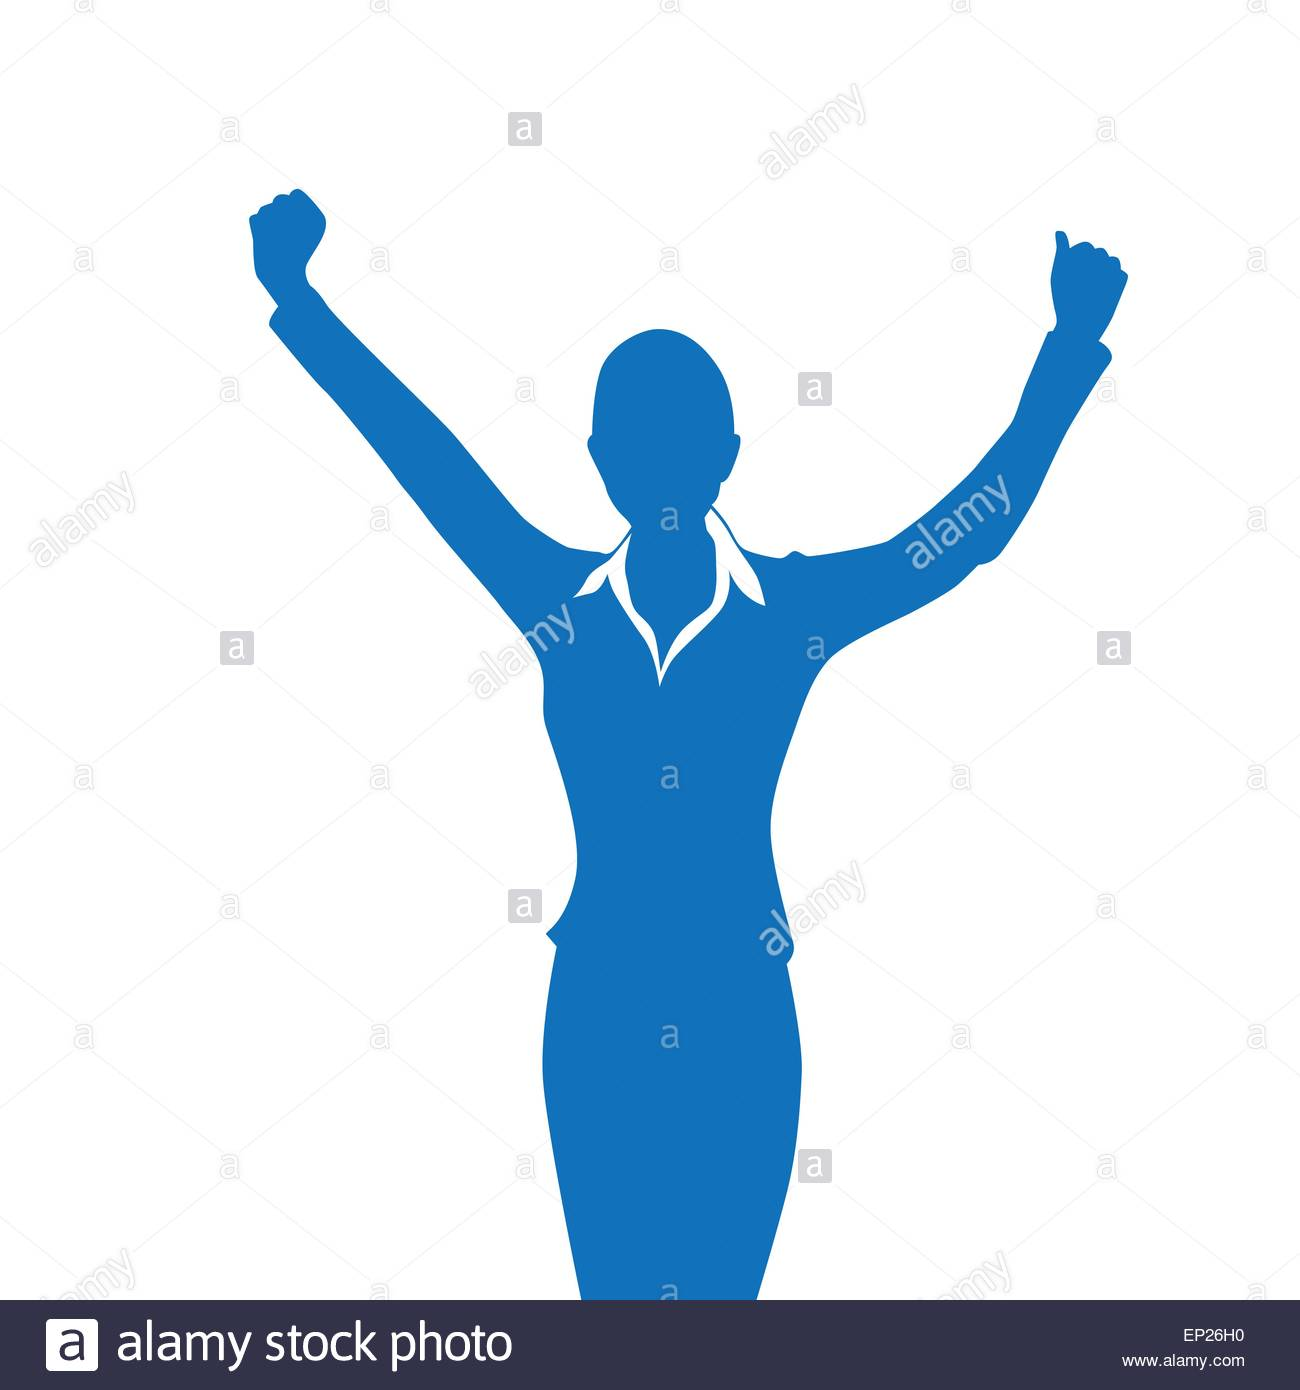 1300x1390 Business Woman Silhouette Excited Hold Hands Up Raised Arms Stock